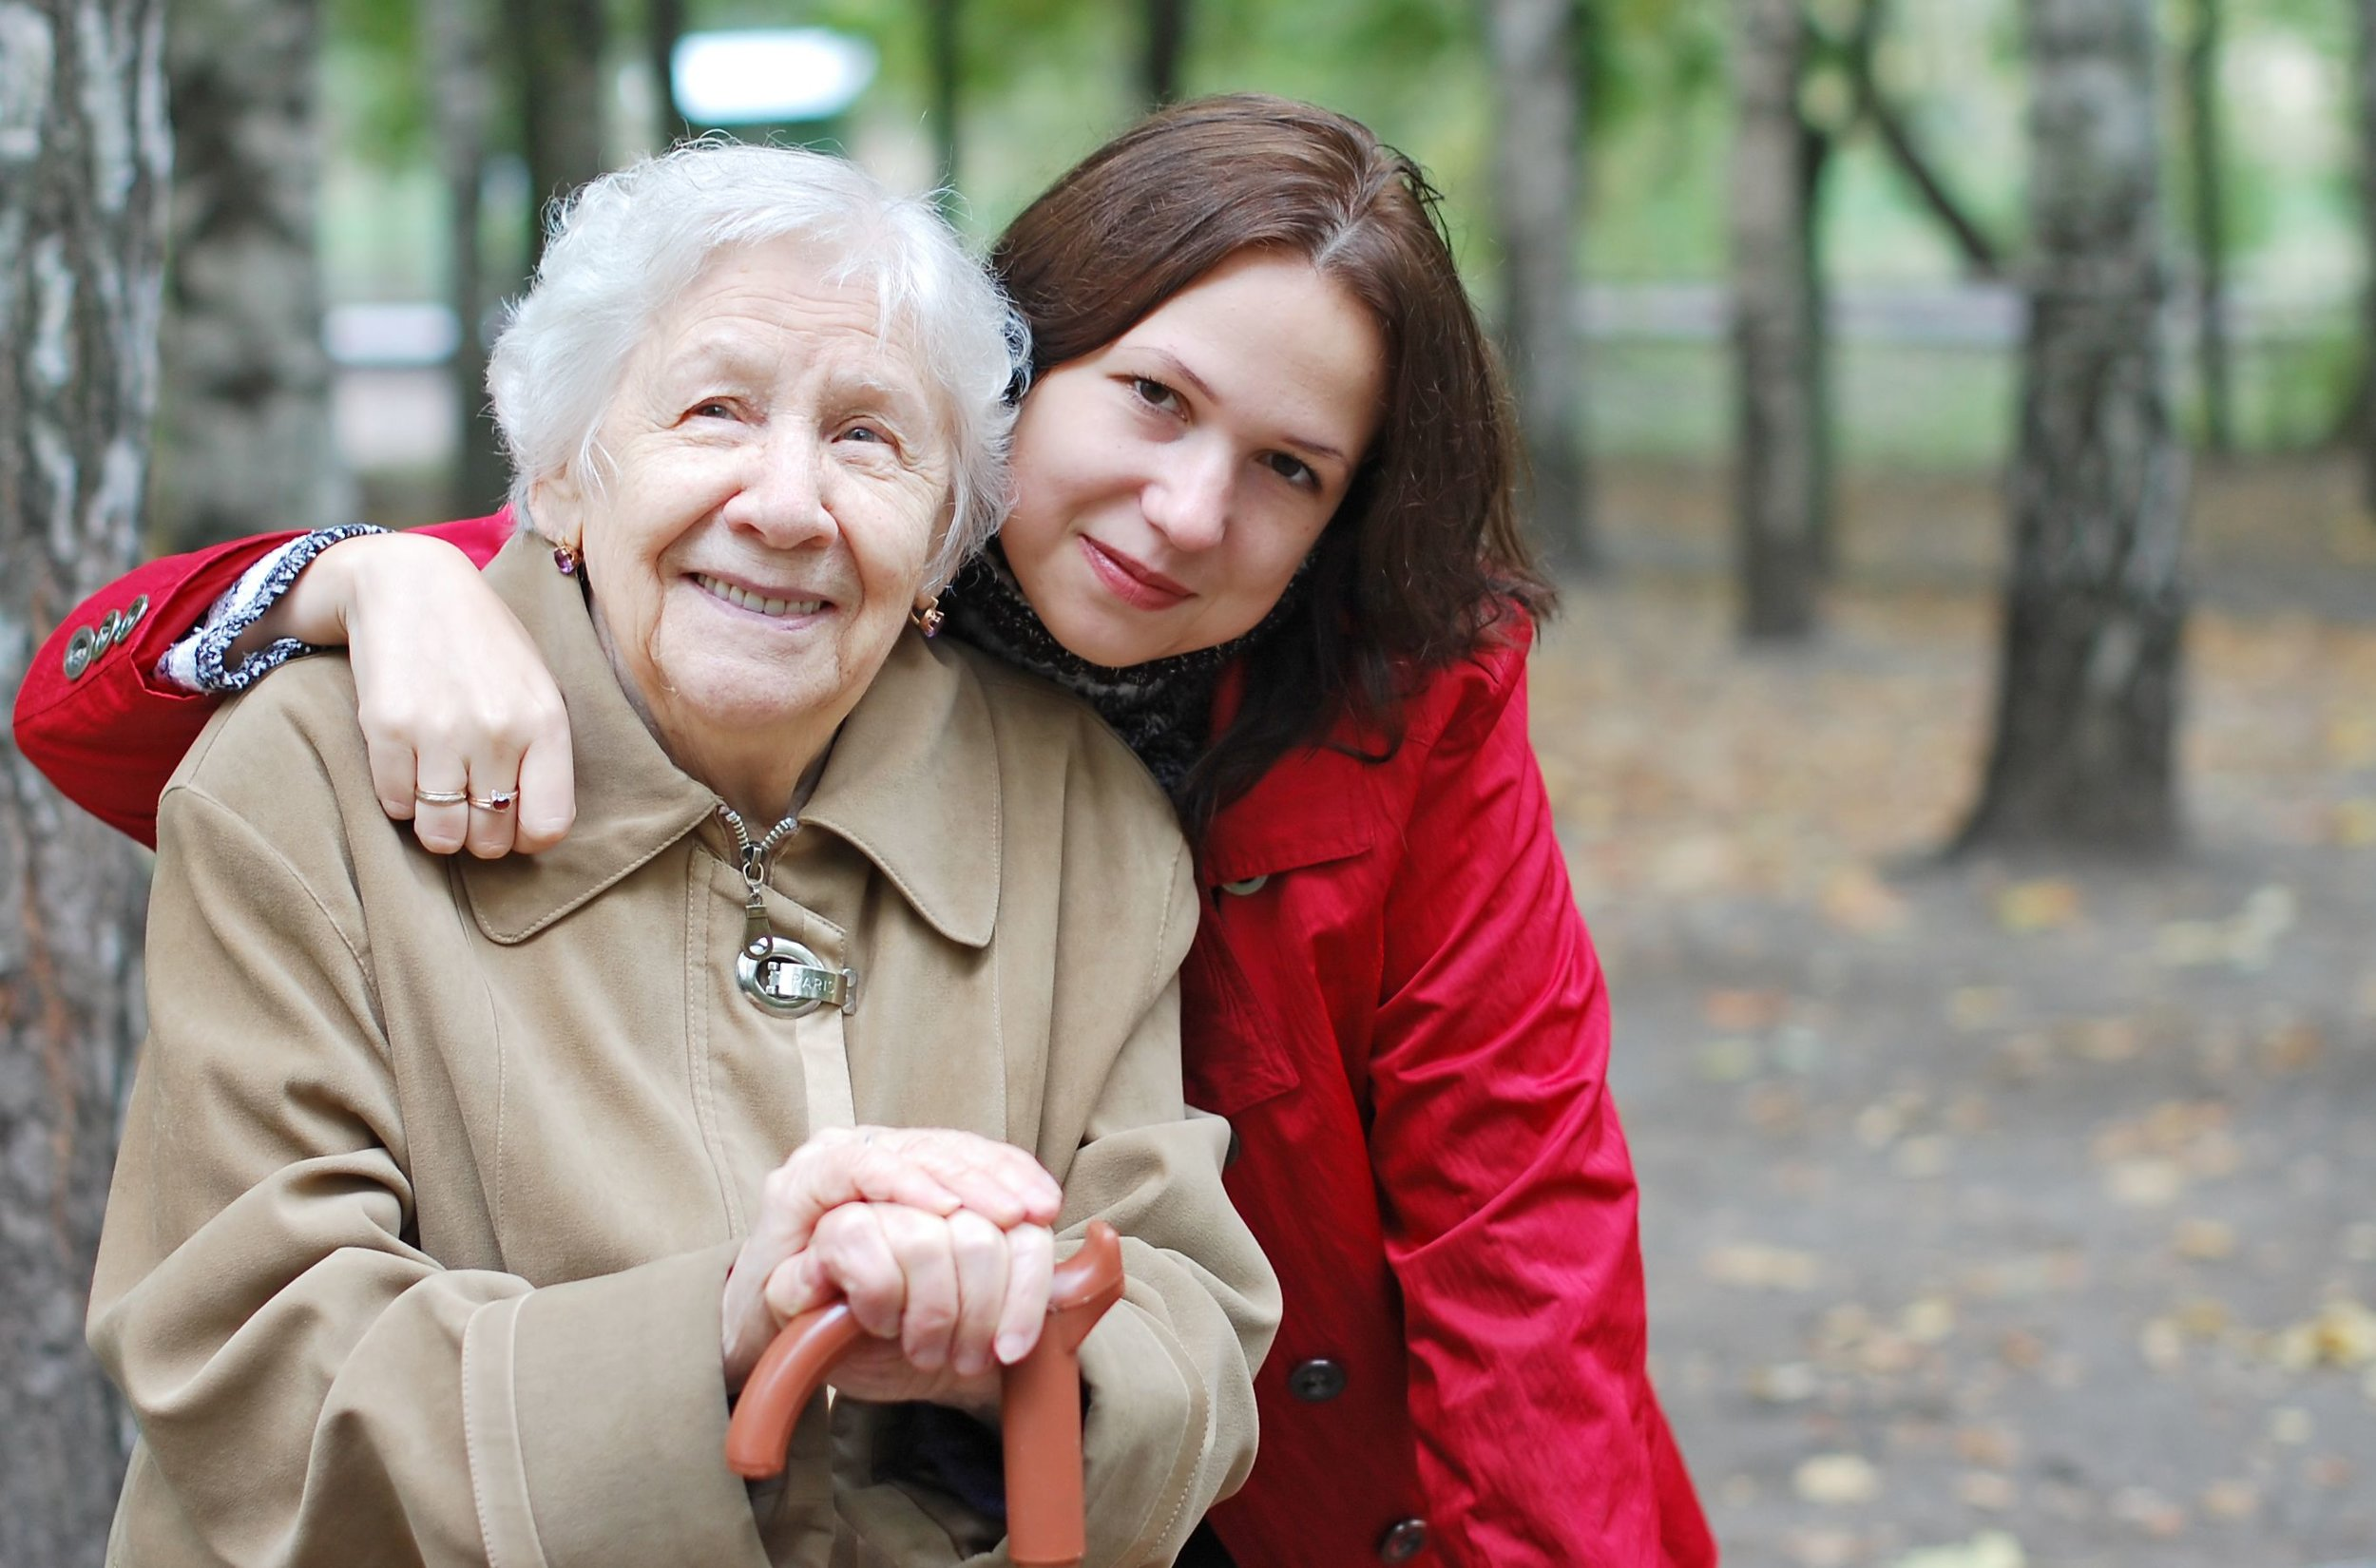 Why Choose Us - Care Connection Home Care LLC has become the preferred provider of home care services in Nassau, Suffolk and Queens Counties. Over the years, we've obtained a positive reputation among seniors, hospitals, assisted living facilities, rehab centers, insurance companies, and doctors in the Long Island area.